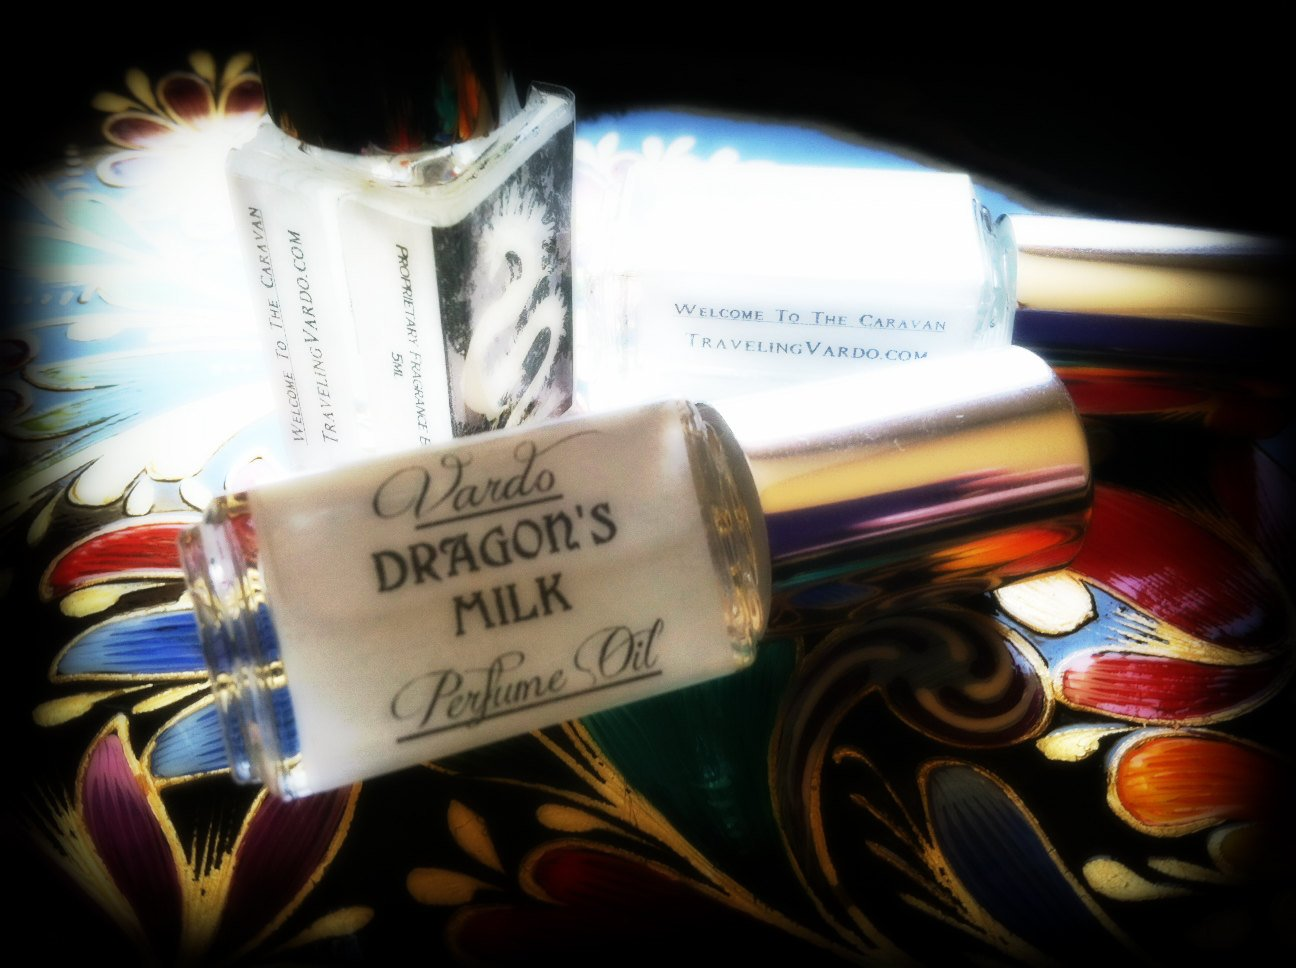 DRAGON'S MILK PERFUME OIL ~ Dragon's Blood Amber Vanilla Sandalwood Musk Milk Cream